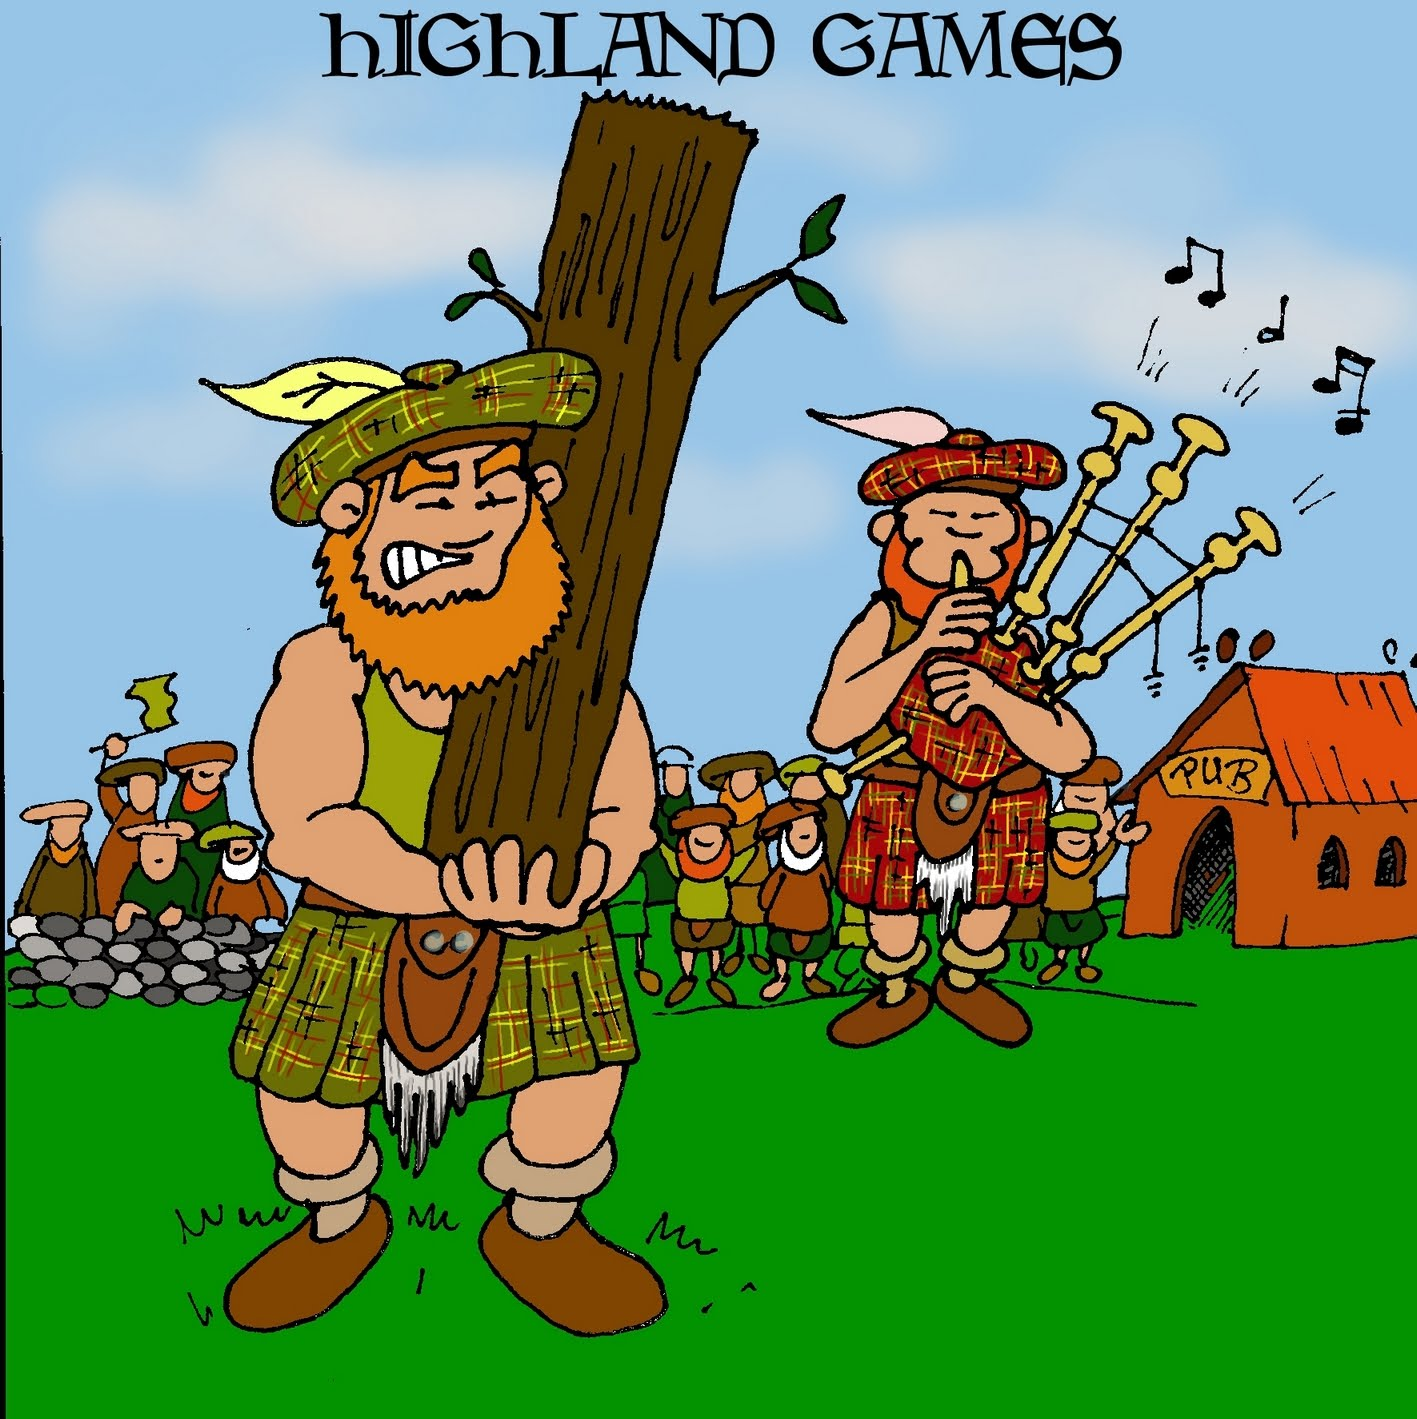 Highlandgames+001+fertig+2+mit+text.jpg